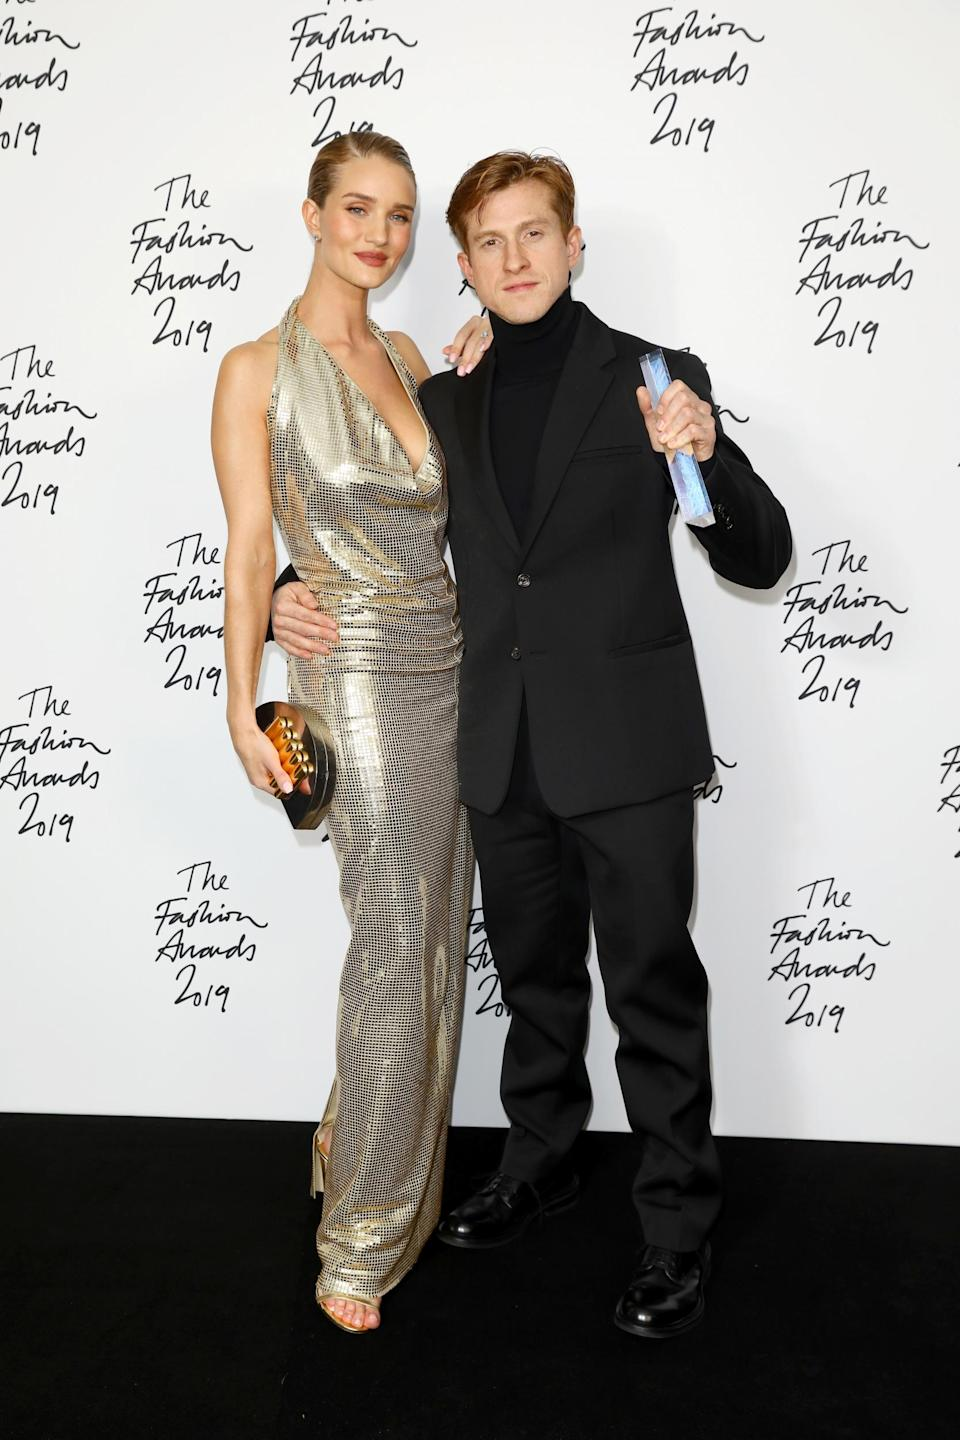 Bottega Veneta's Daniel Lee with model Rosie Huntington-Whiteley, who was wearing one of his designs (Getty Images)